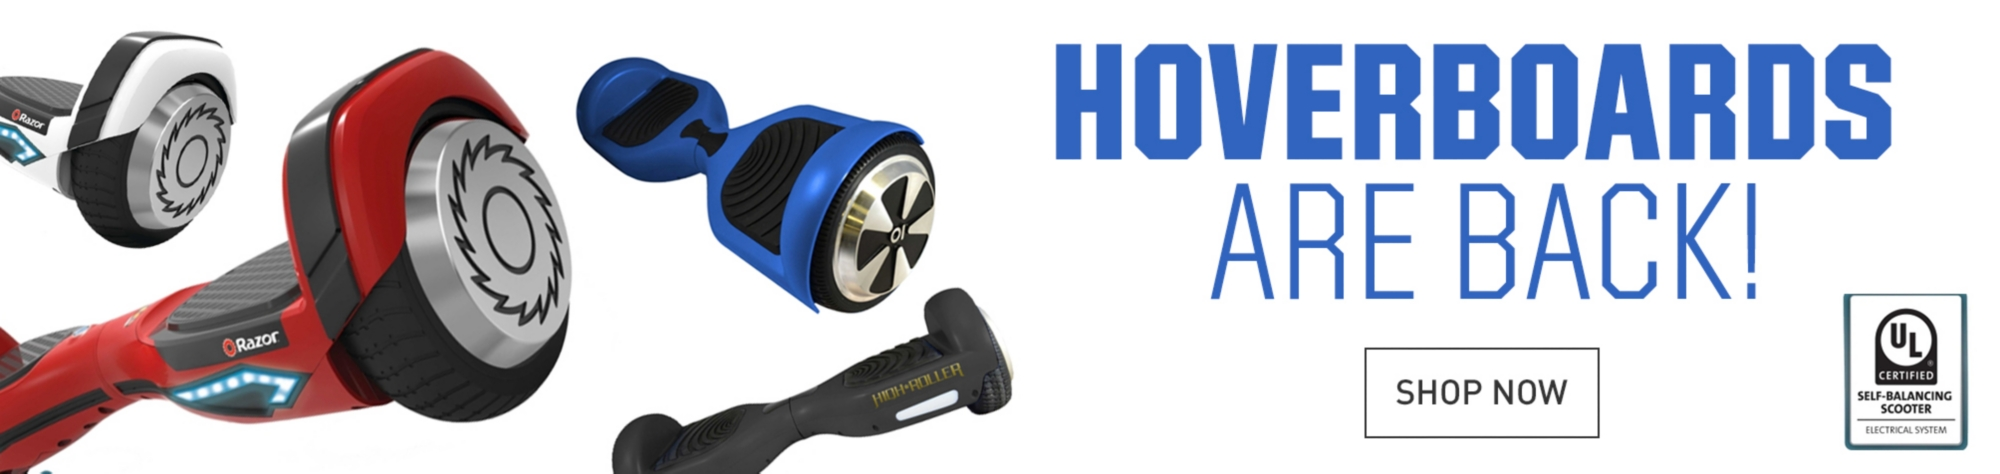 Shop Hoverboards